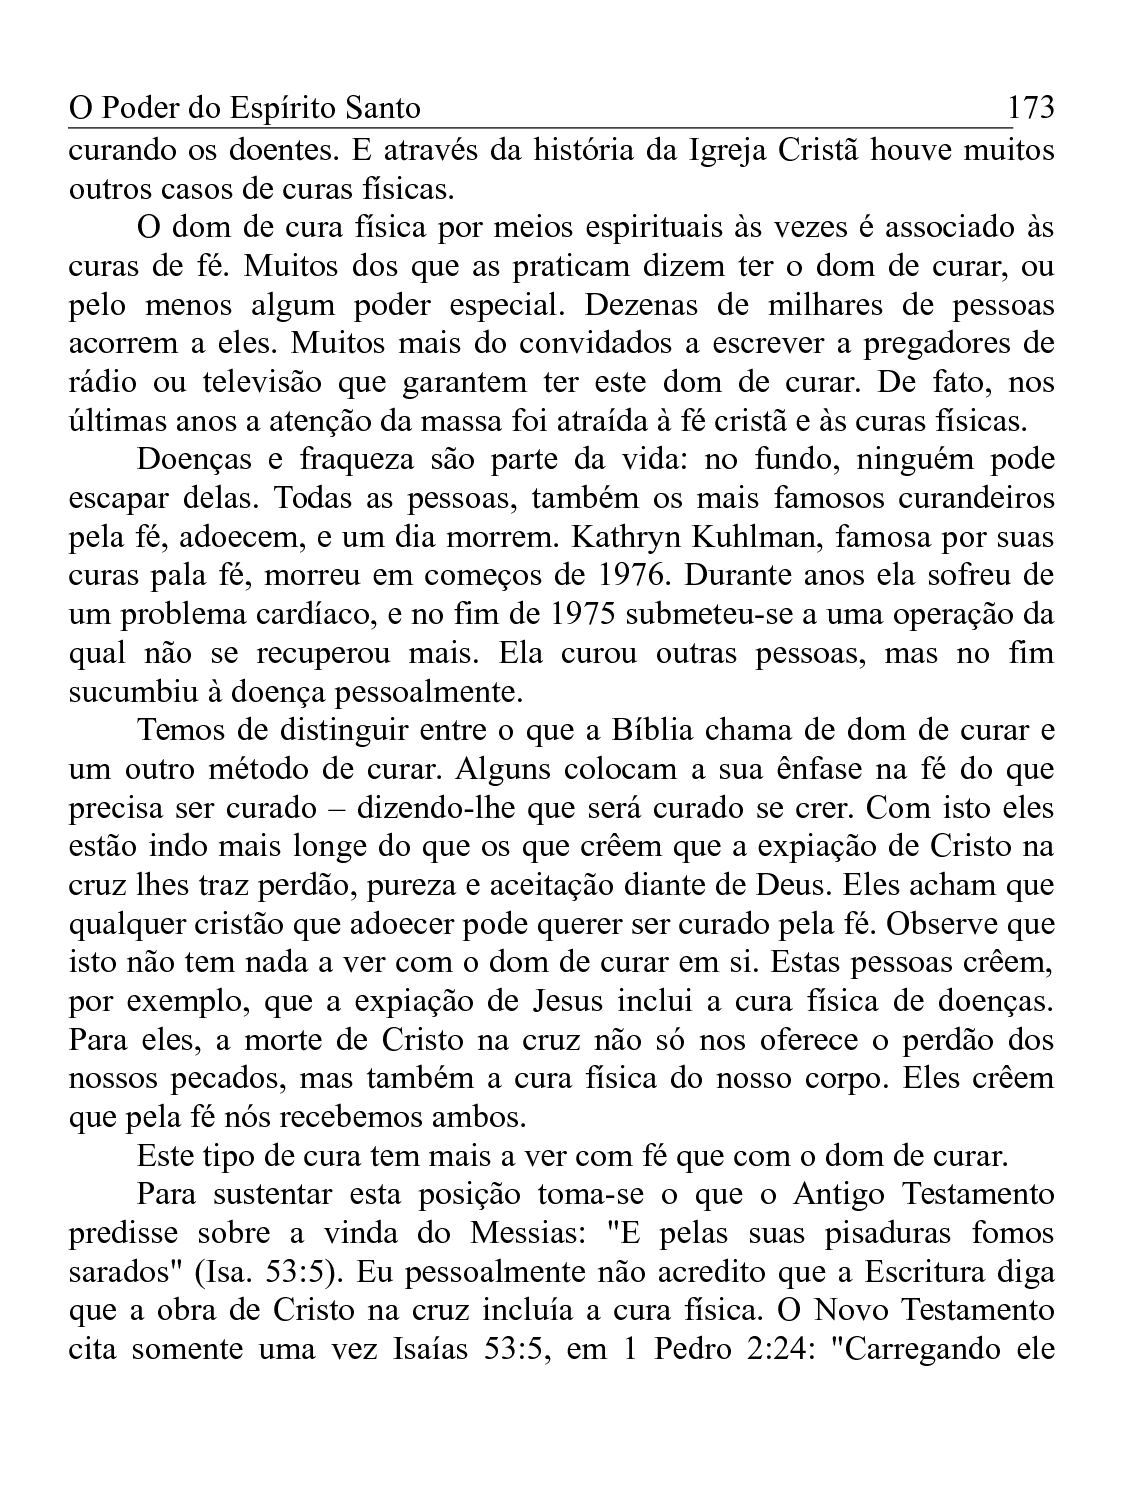 Page 173